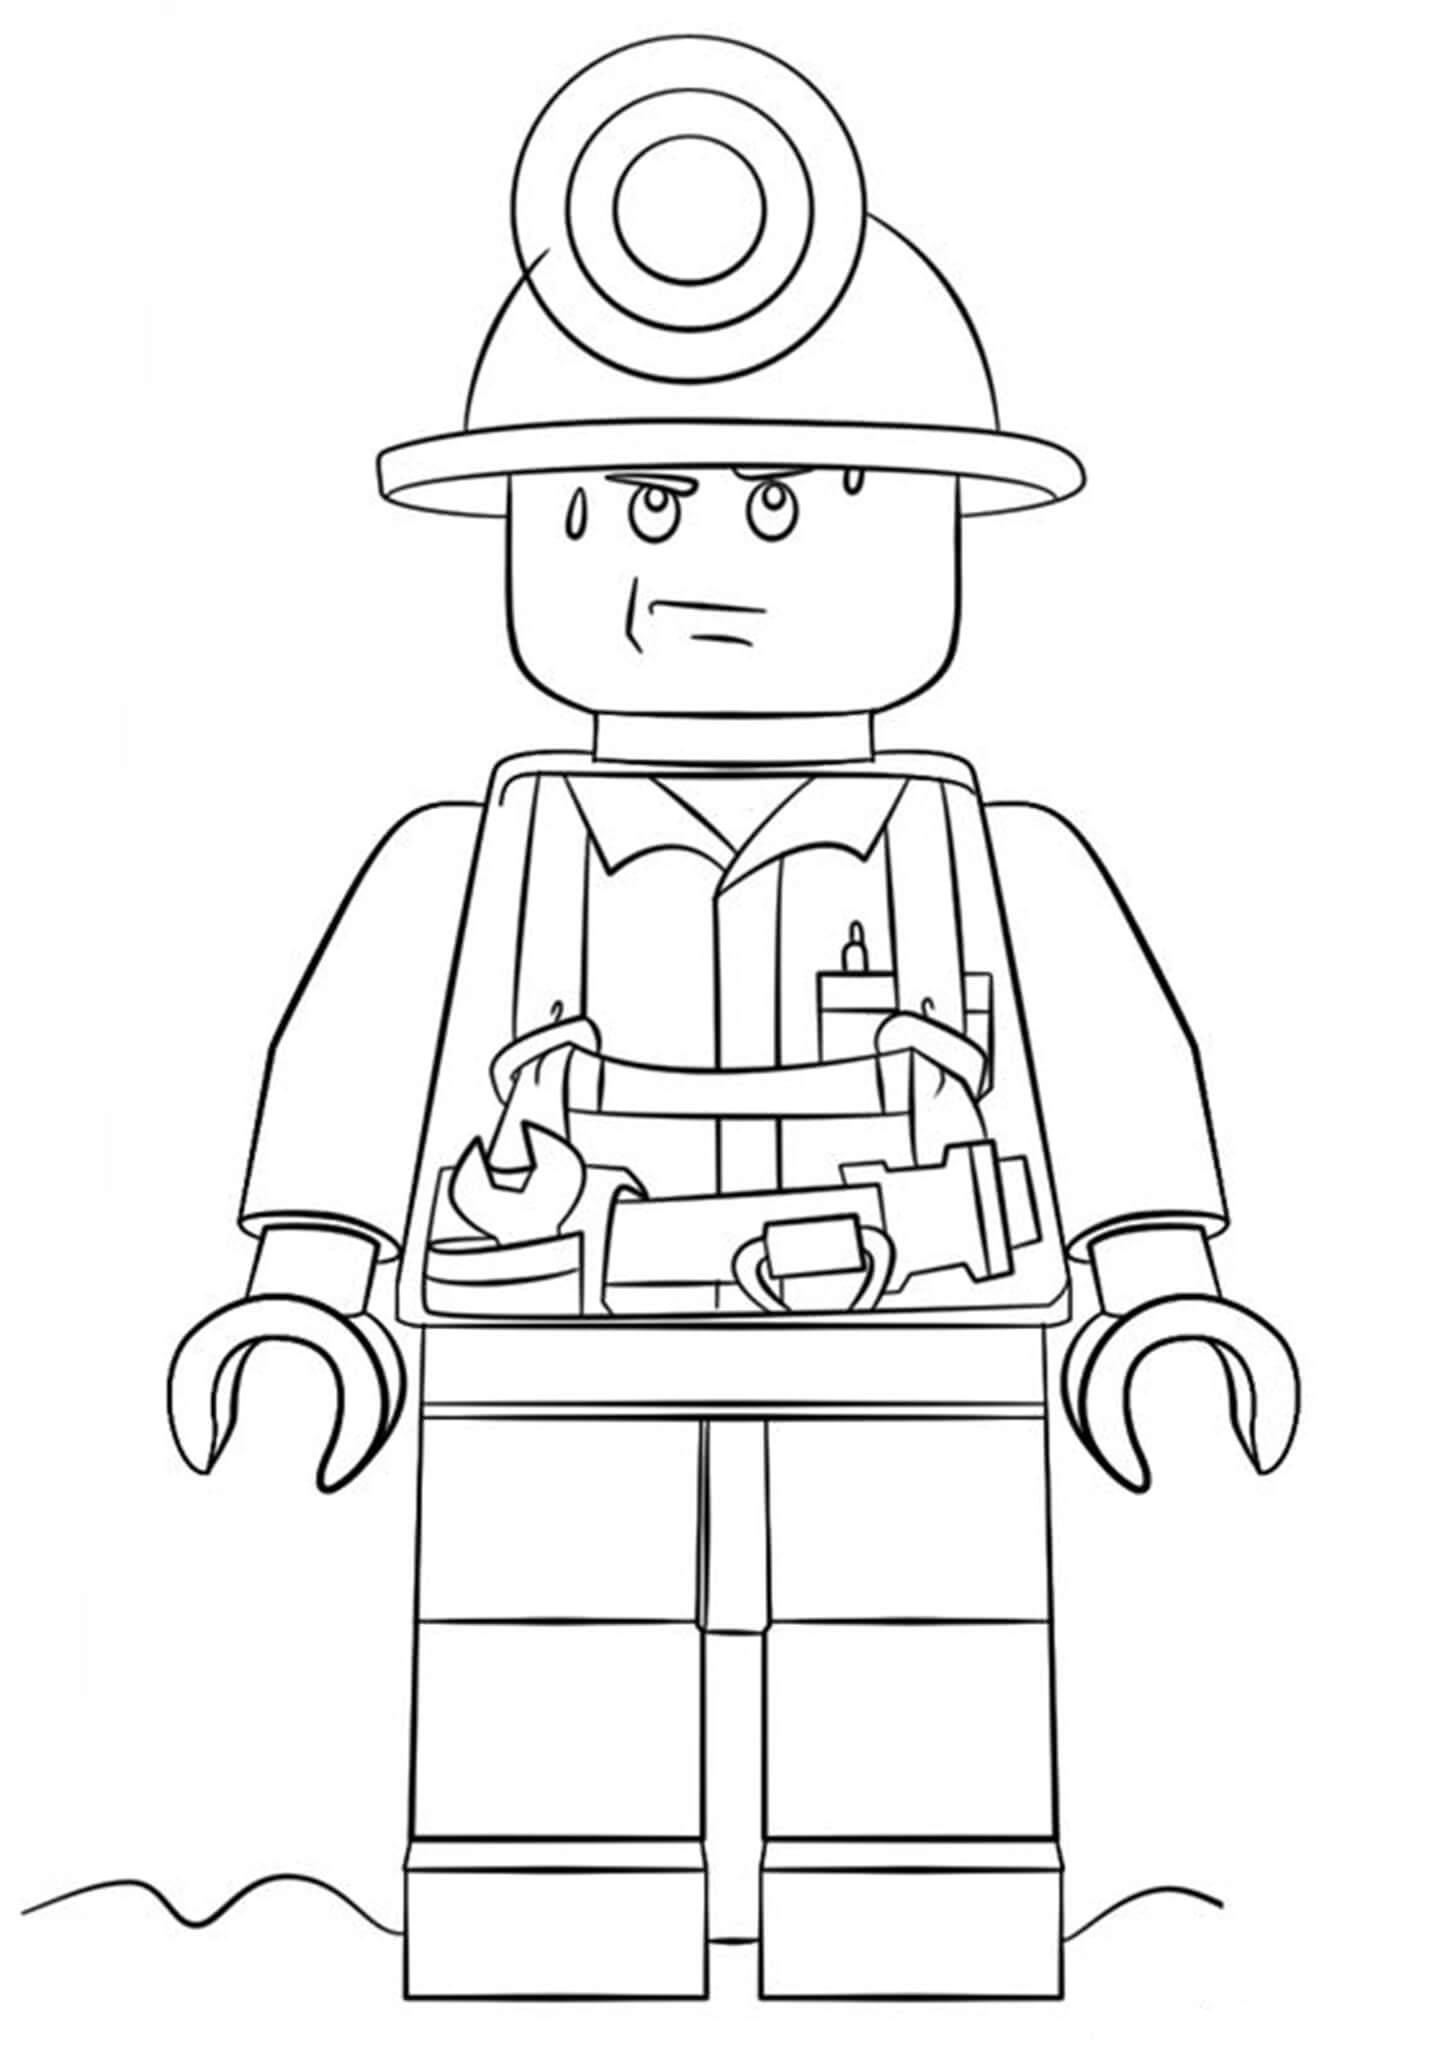 Free Easy To Print Lego Coloring Pages In 2020 Lego Coloring Lego Coloring Pages Kids Christmas Coloring Pages